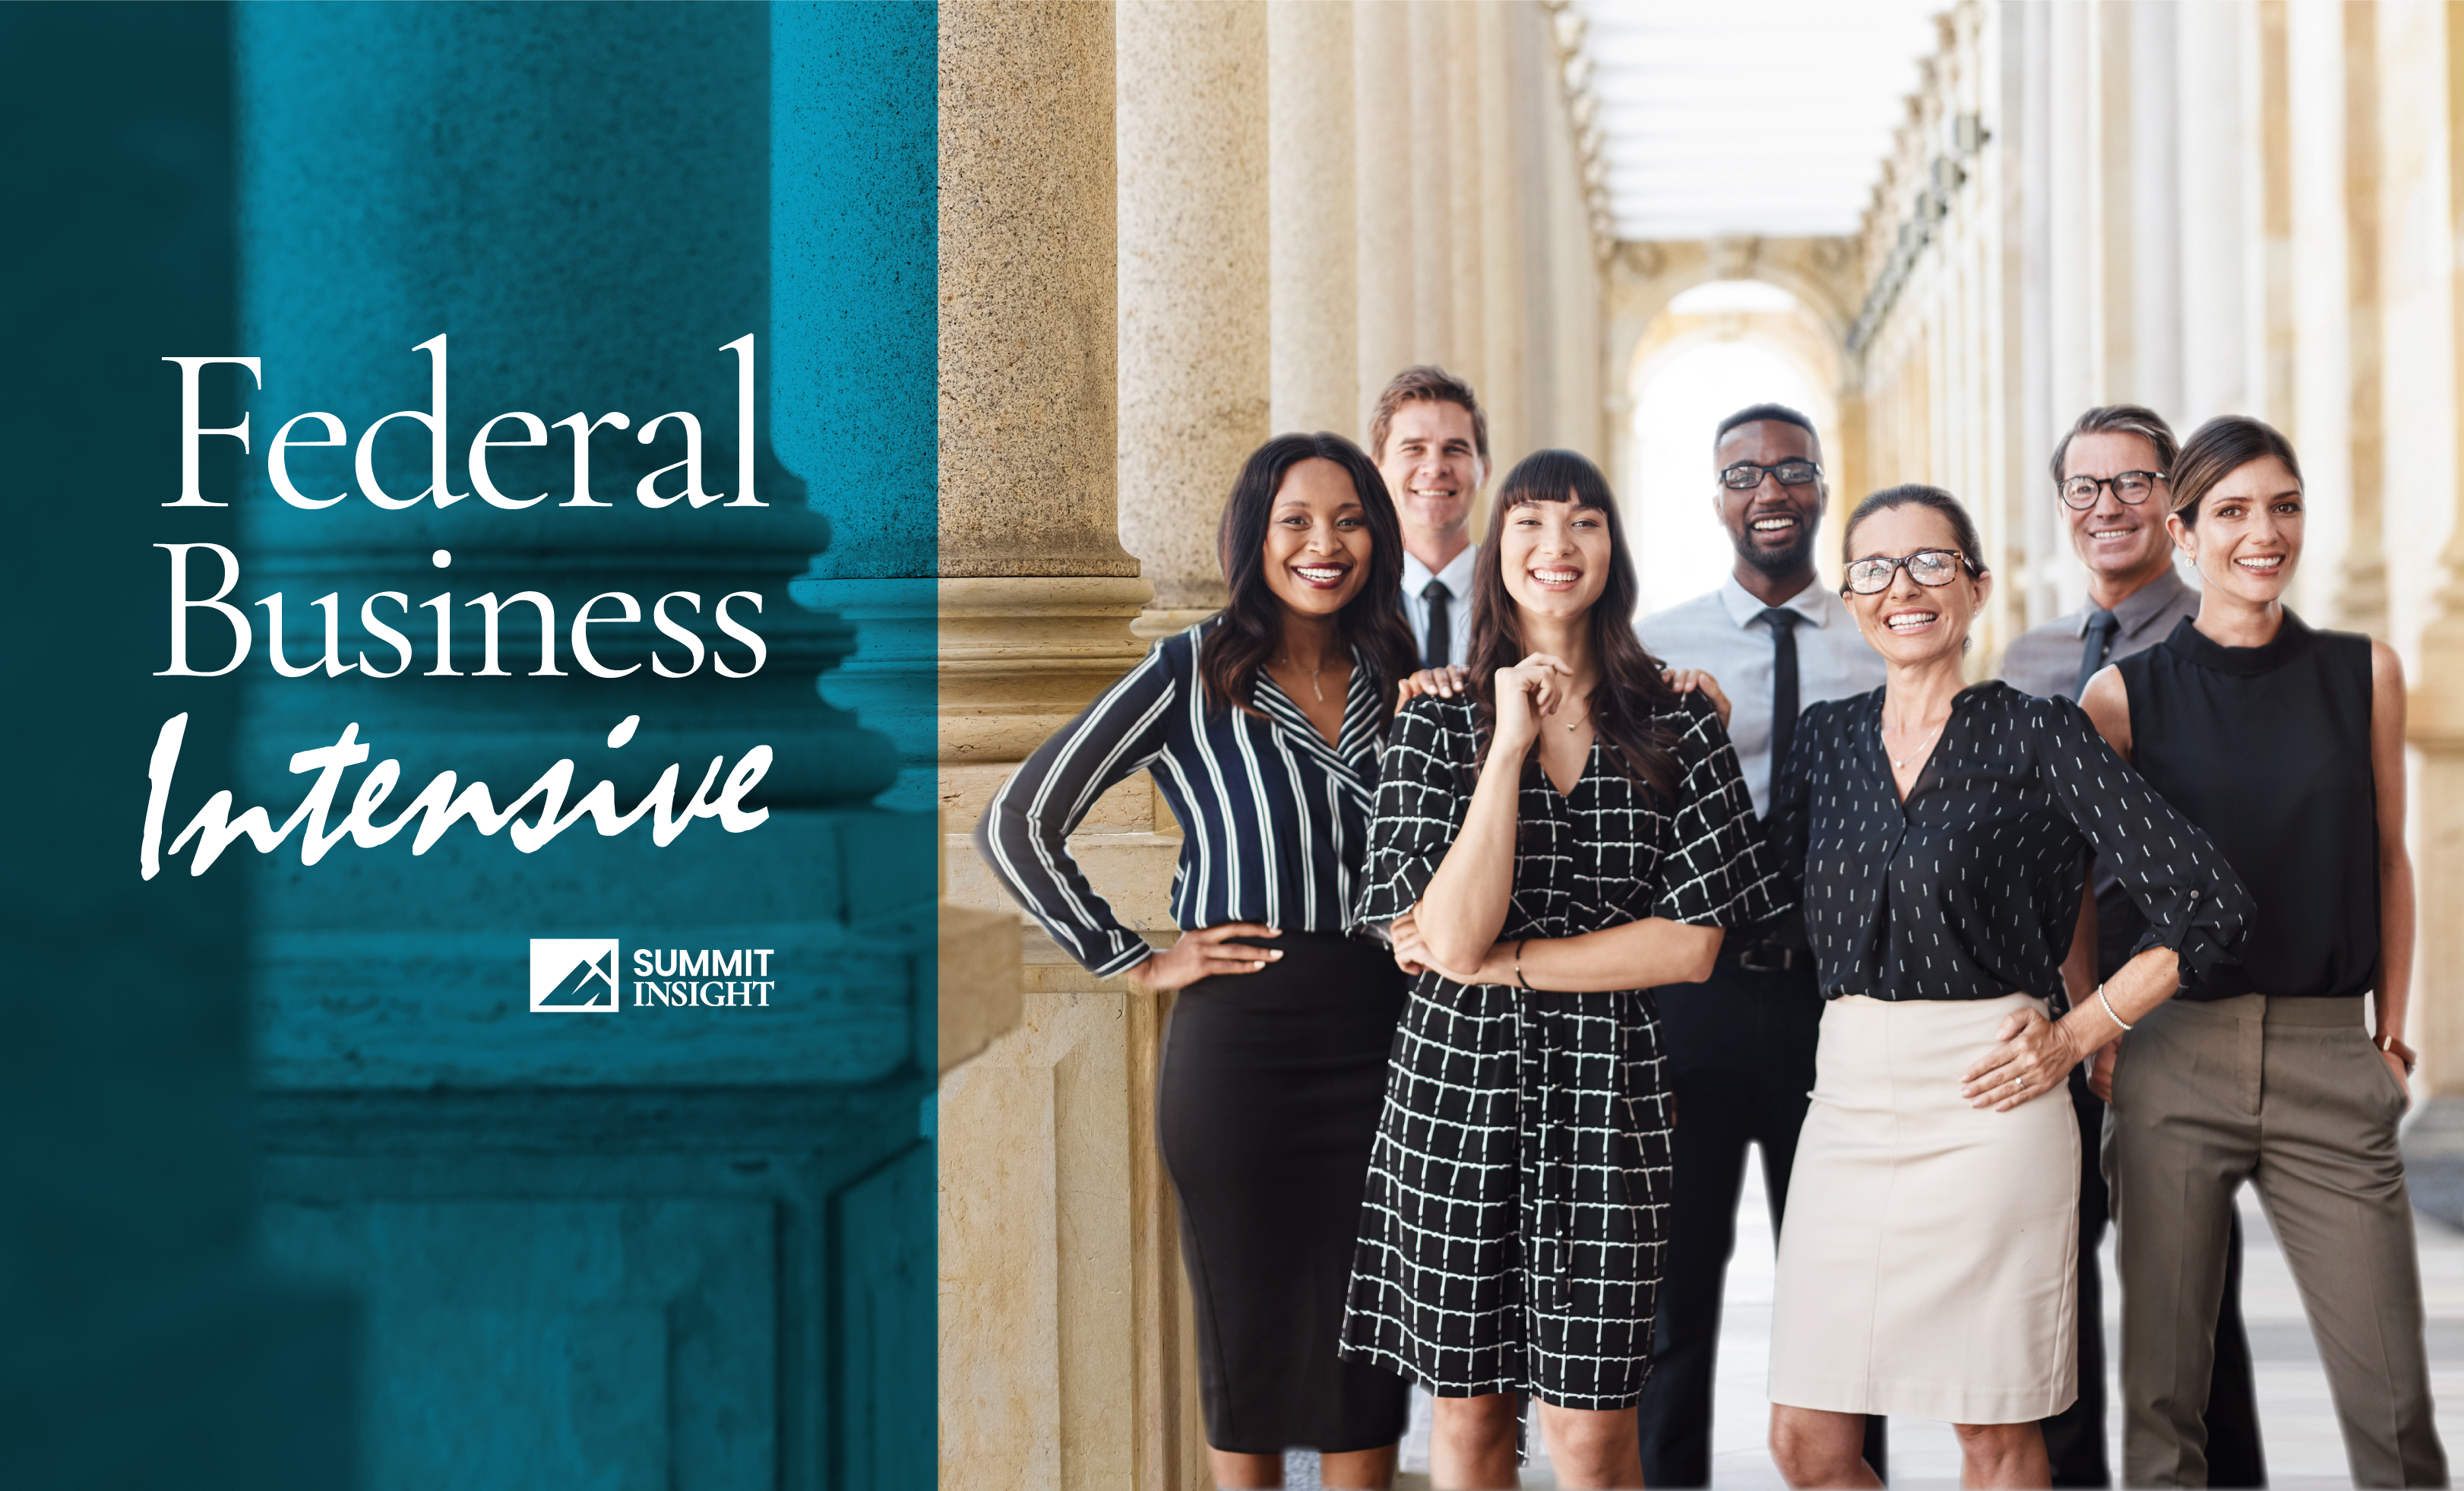 Federal Business Intensive